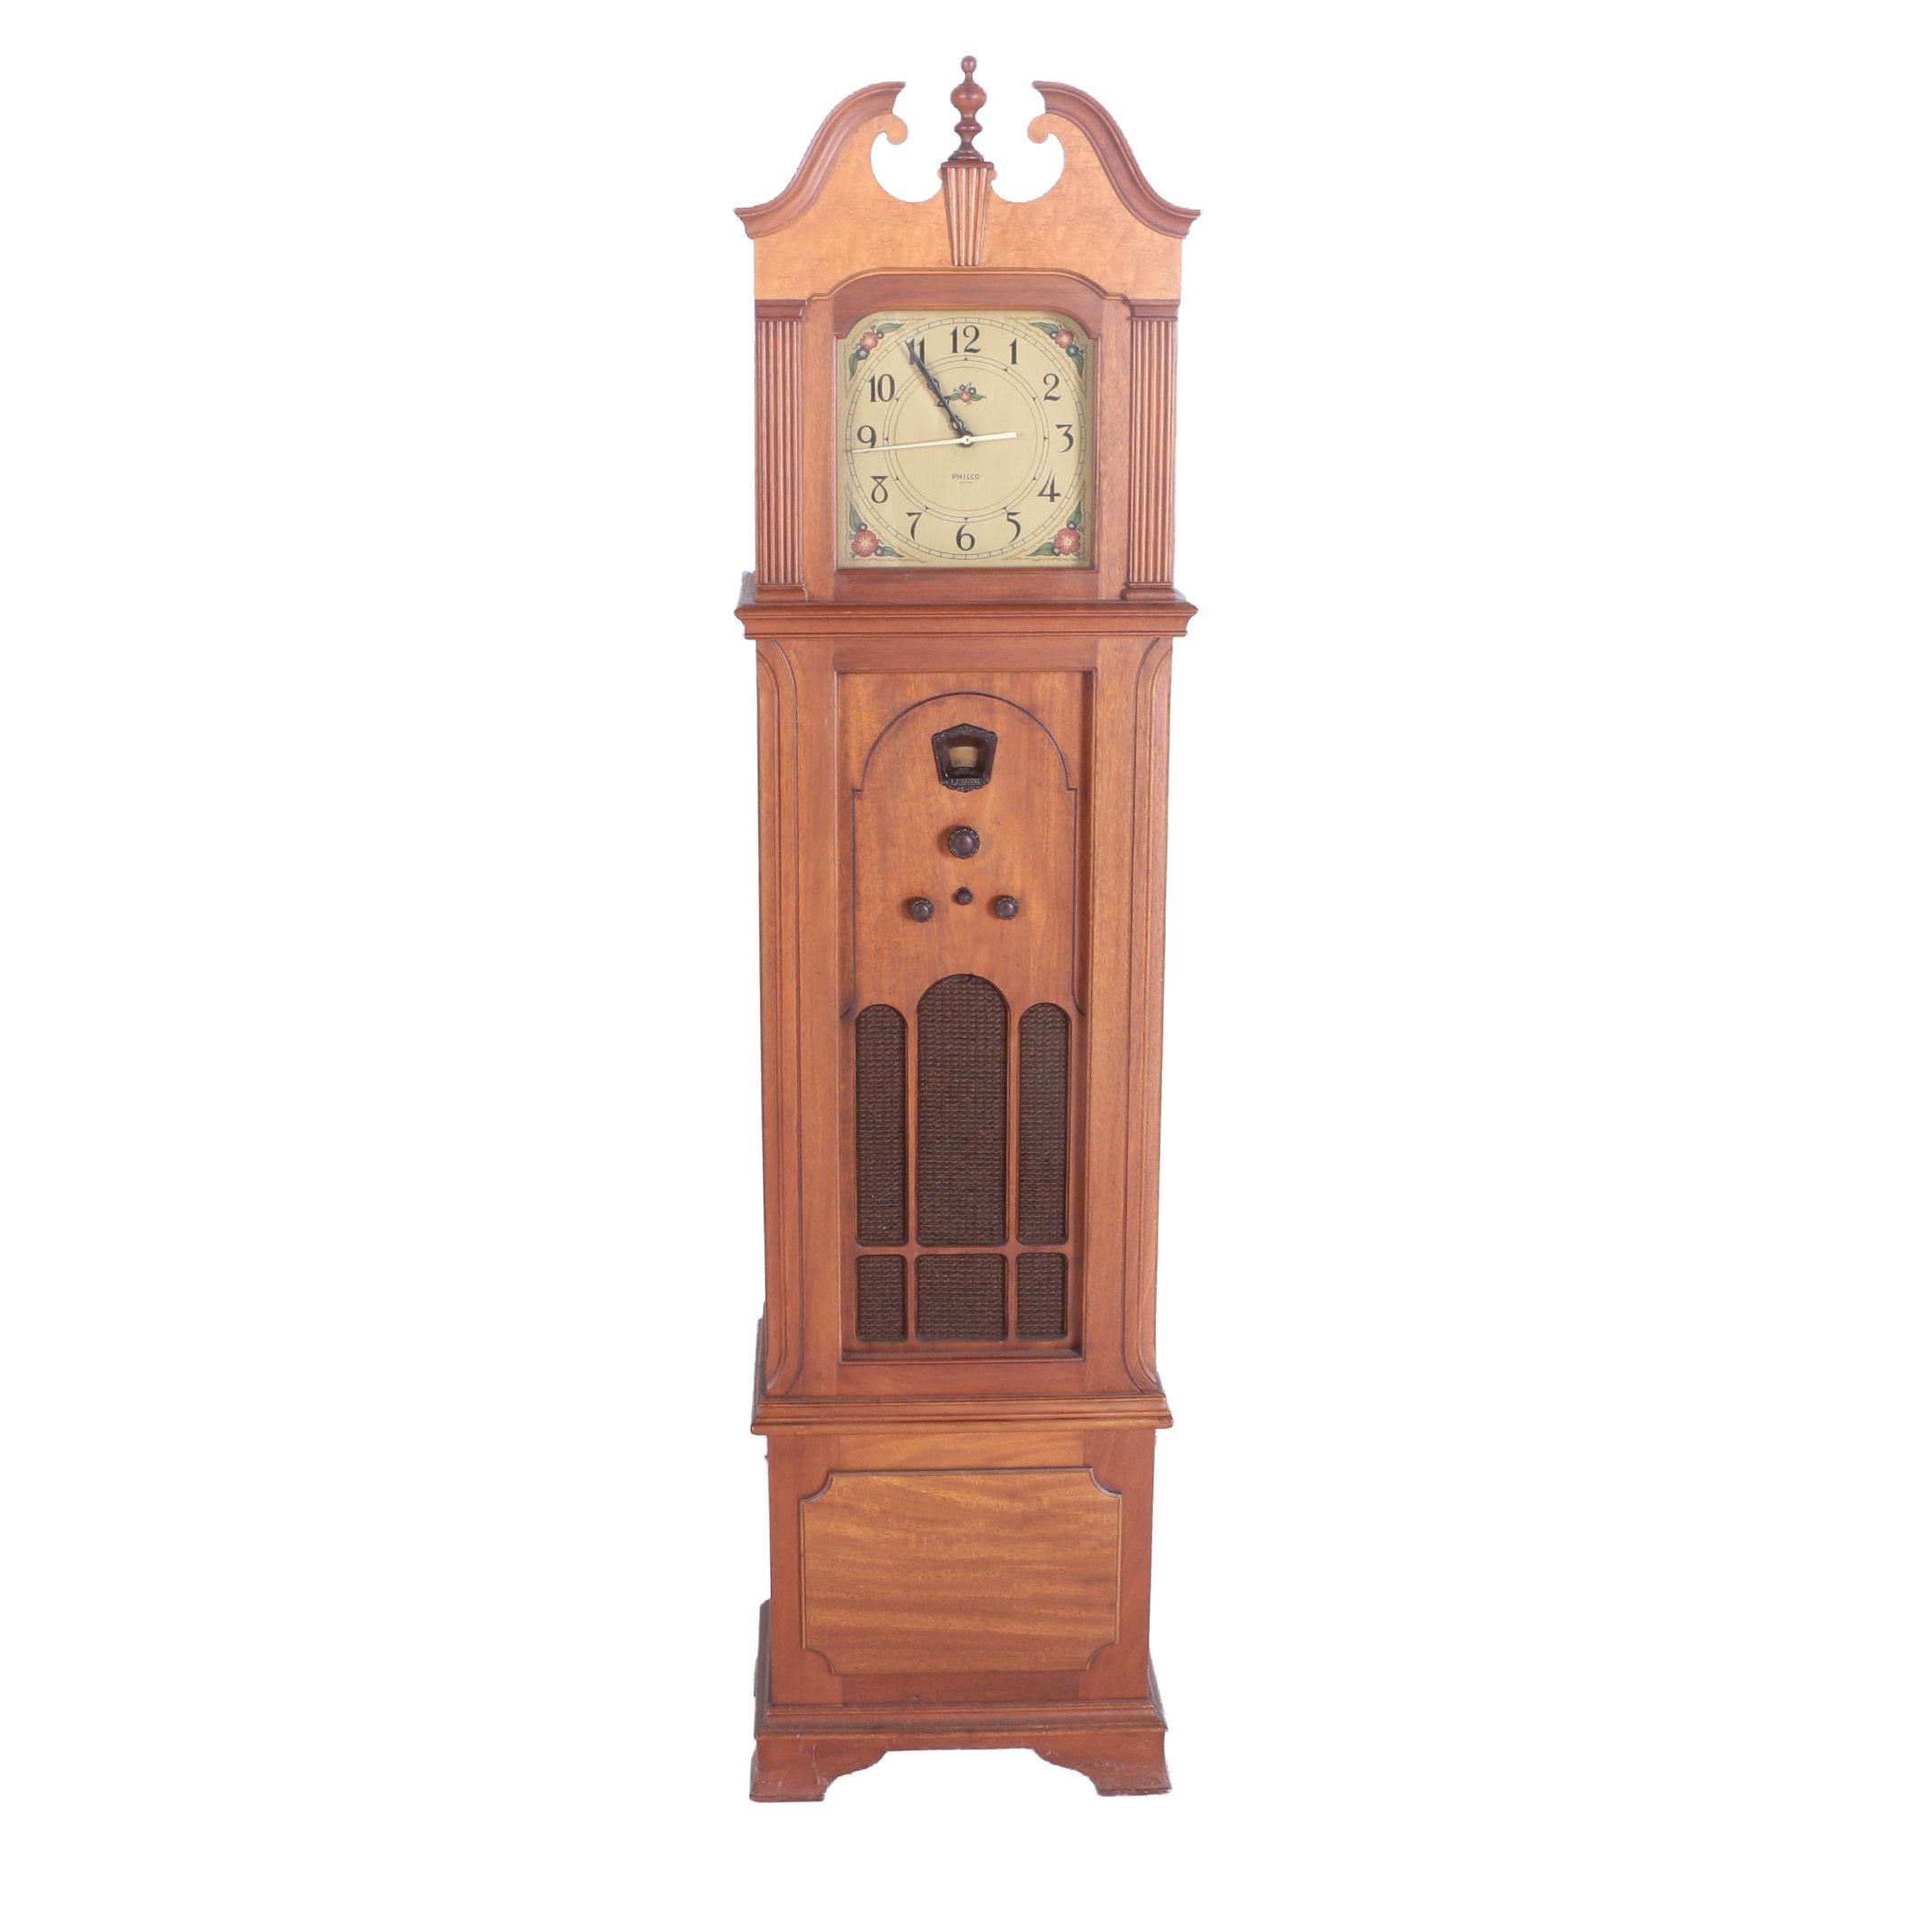 Circa 1930s Philco 570 Grandfather Clock Radio